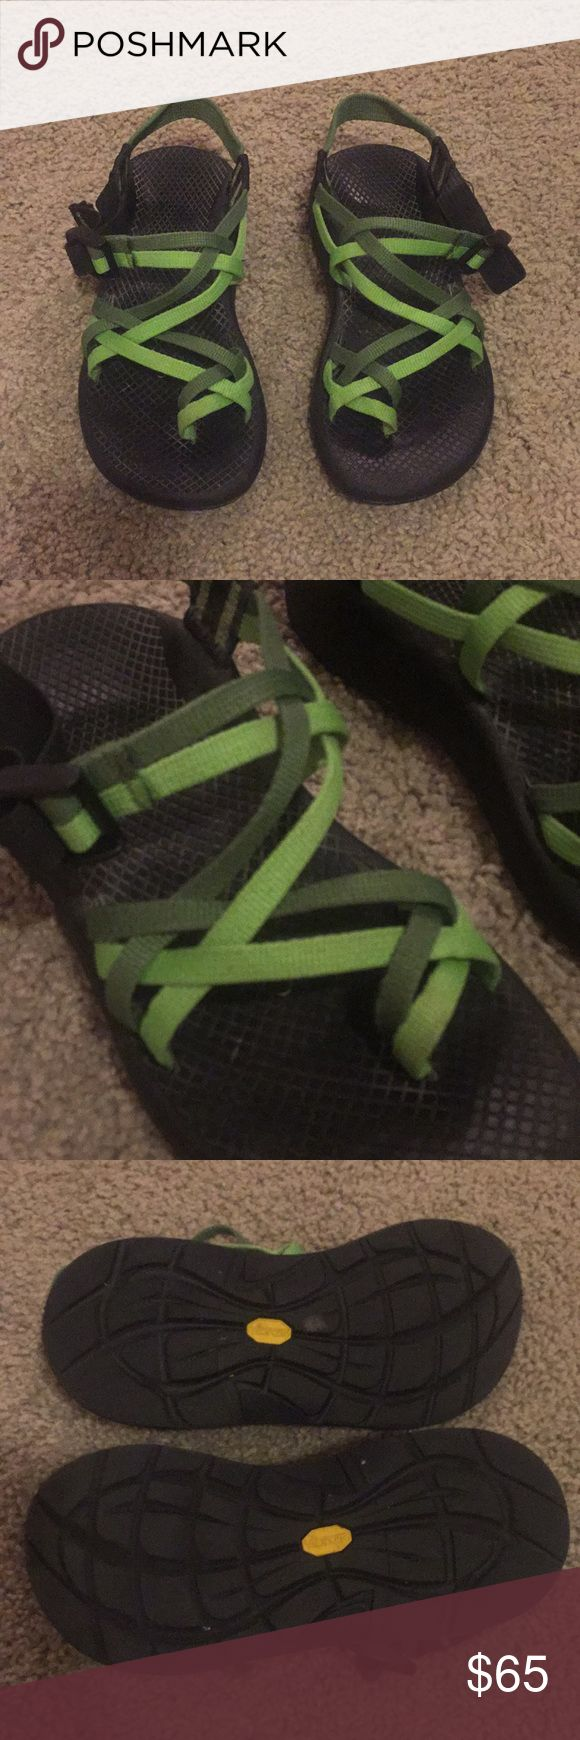 CHACOS! Excellent condition! Authentic chacos! Size 6 in women's, double strap with a toe strap, two tone green, Vibram soles. The straps are still easy to adjust 🙃 offers welcome but no lowballing please 😄💕 Chaco Shoes Sandals